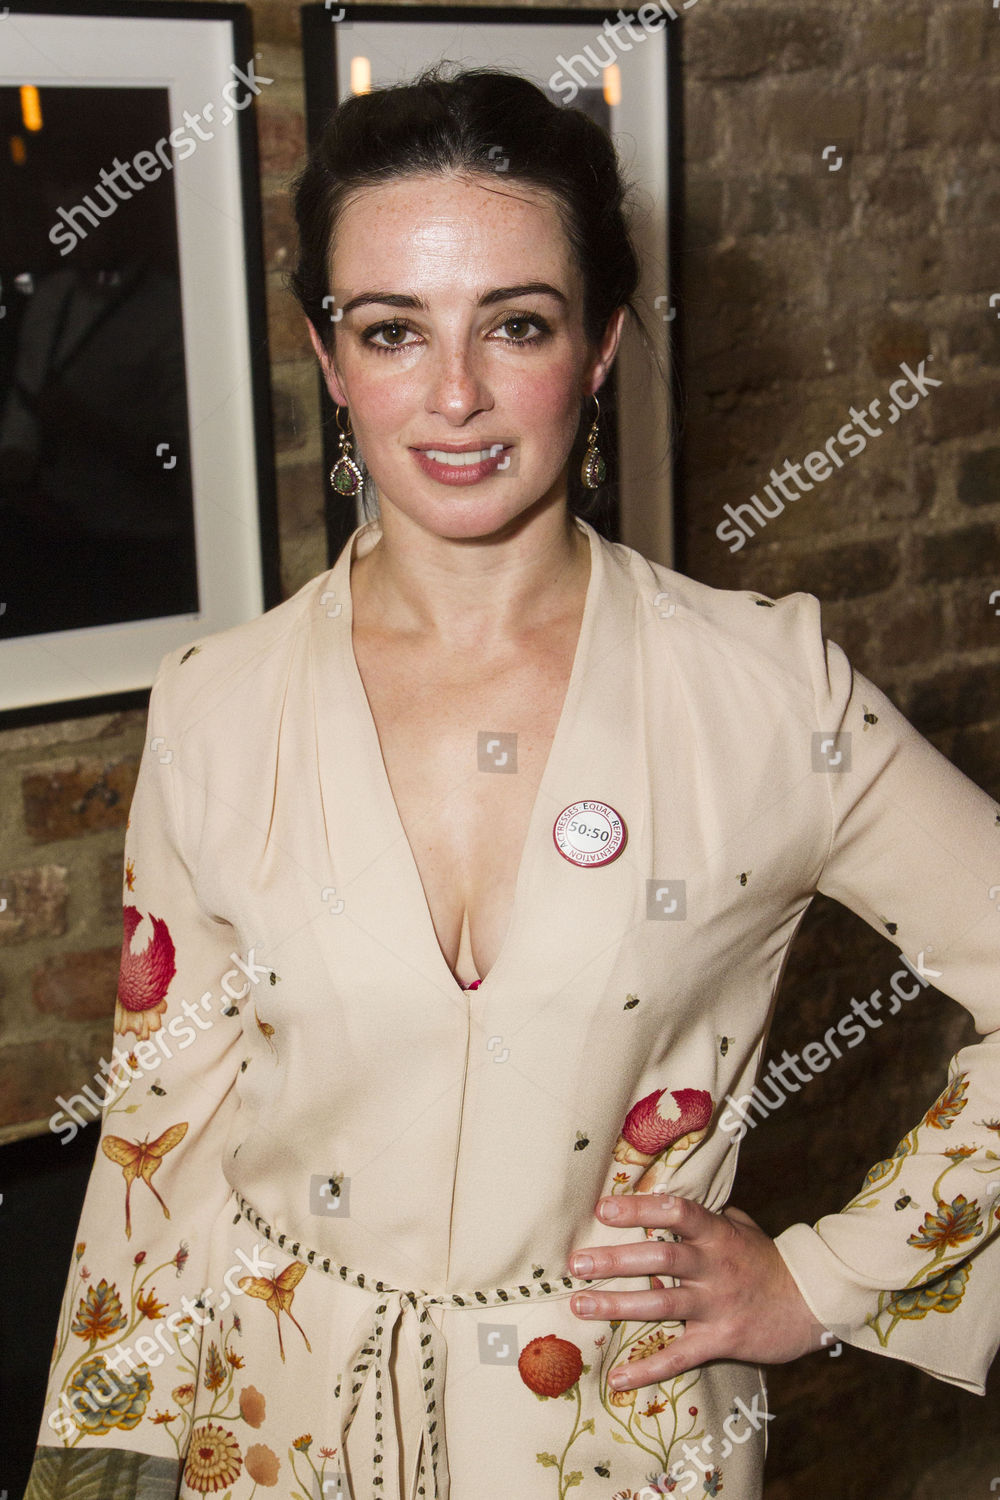 Images Laura Donnelly naked (74 foto and video), Pussy, Sideboobs, Selfie, braless 2019